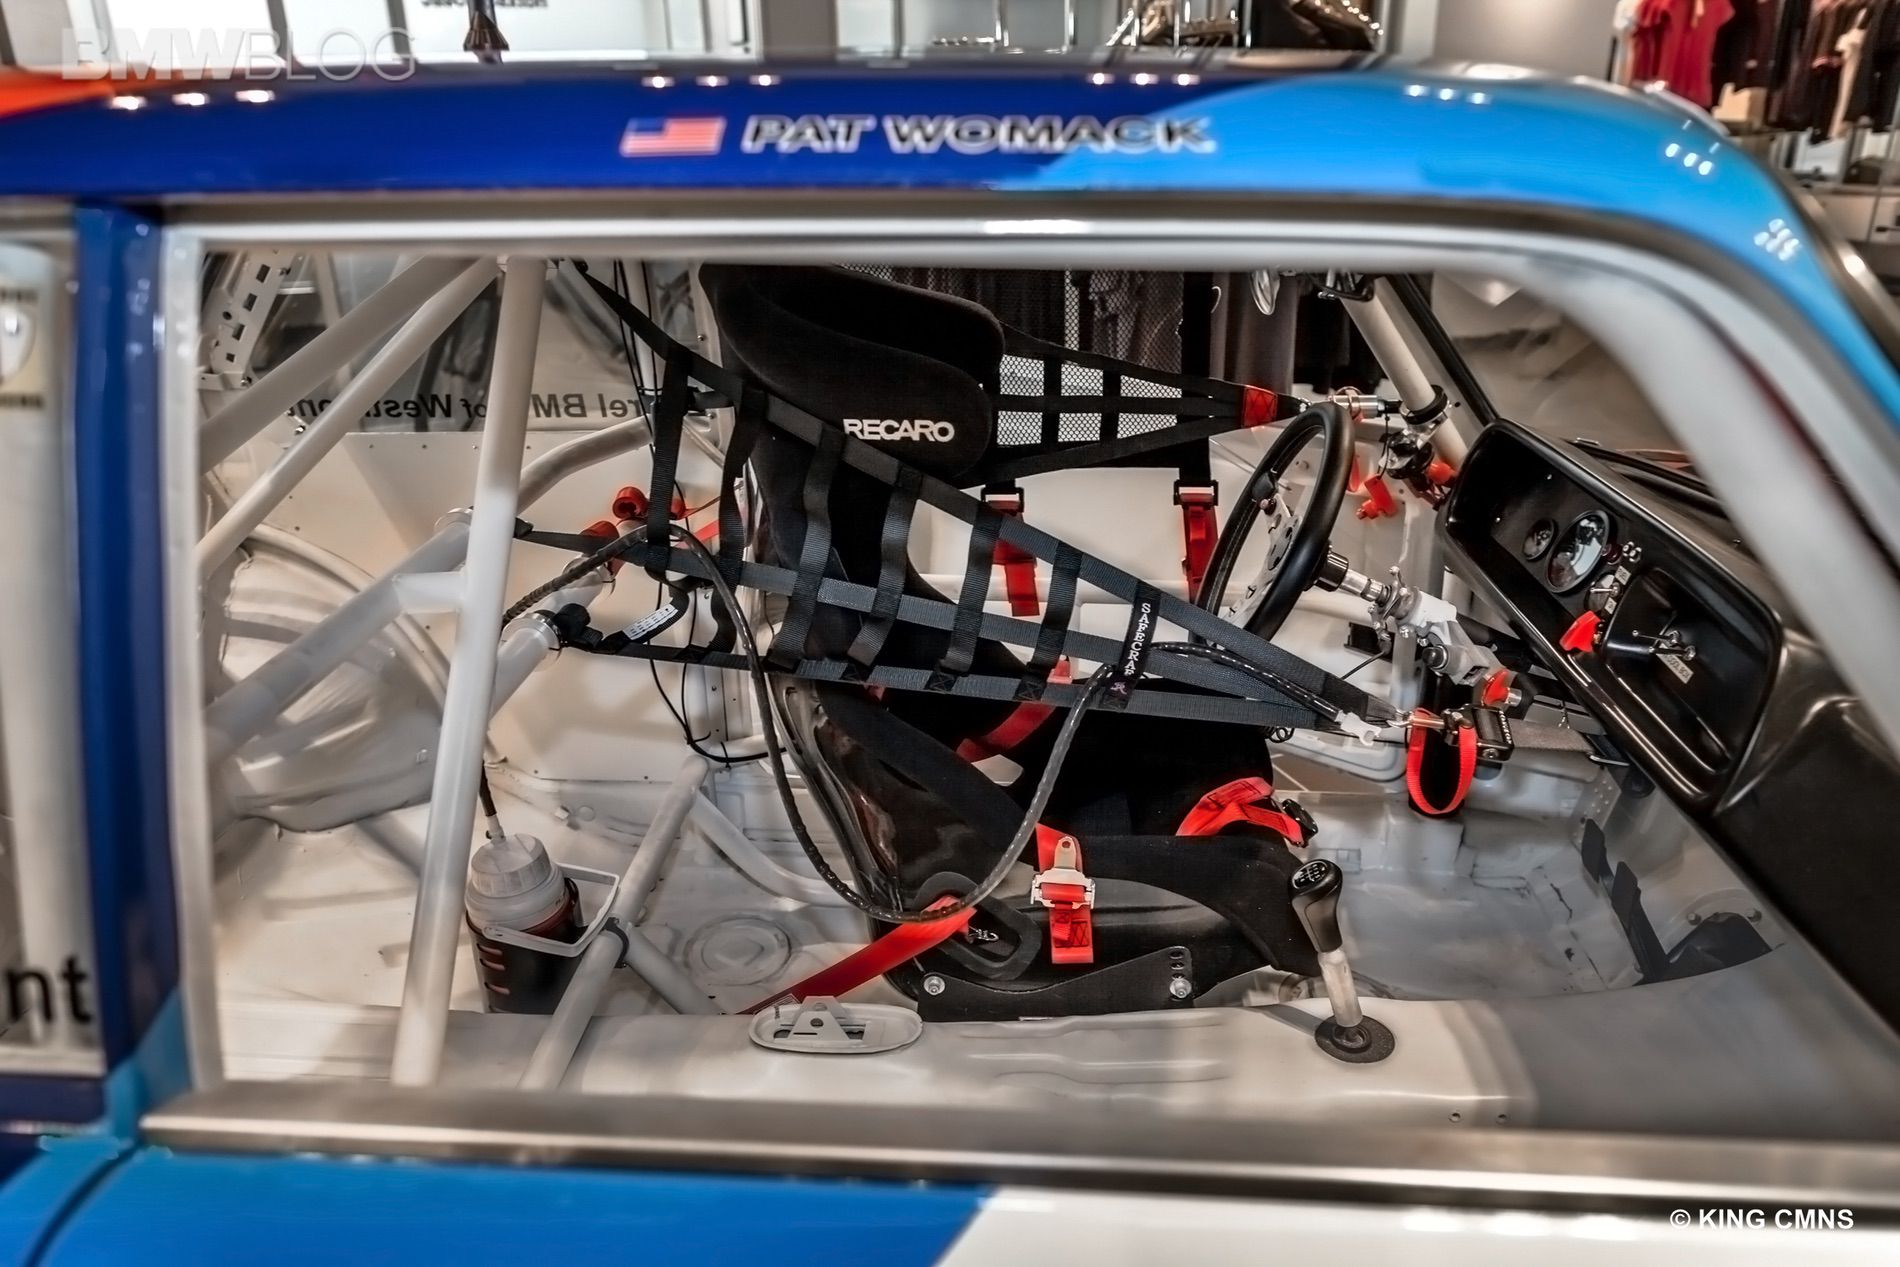 bmw 2002 wiring harness the business of restoring a bmw 2002 race car  restoring a bmw 2002 race car